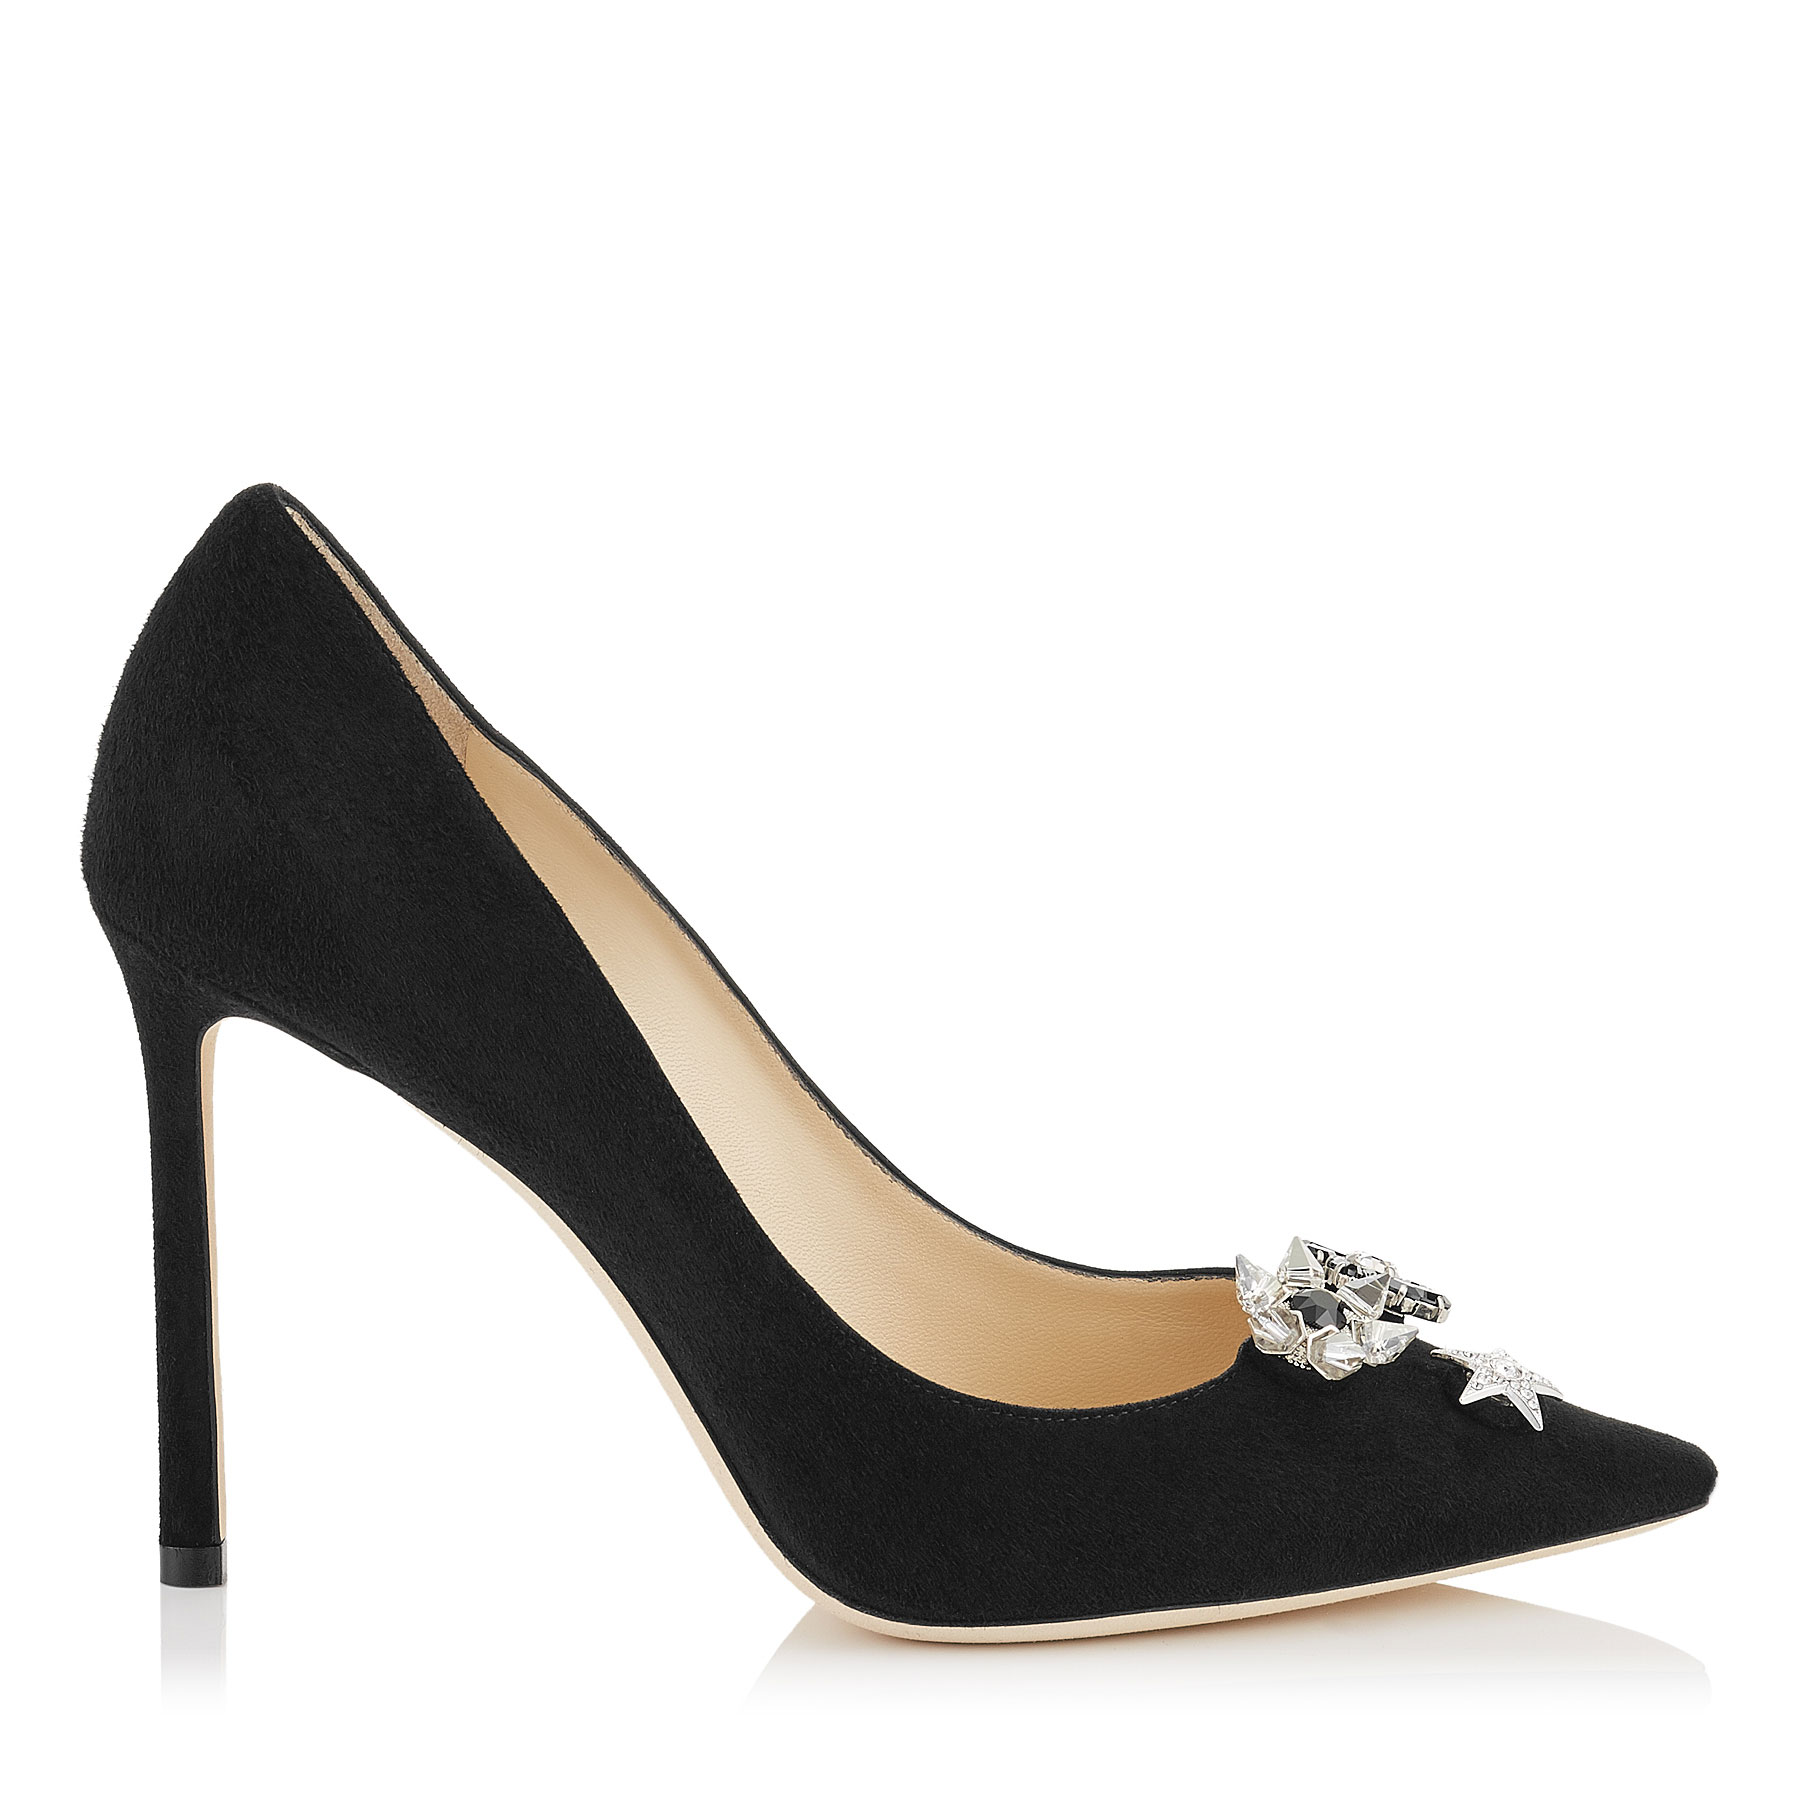 JASMINE 100 Black Suede Pointy Toe Pumps with Jewelled Buttons